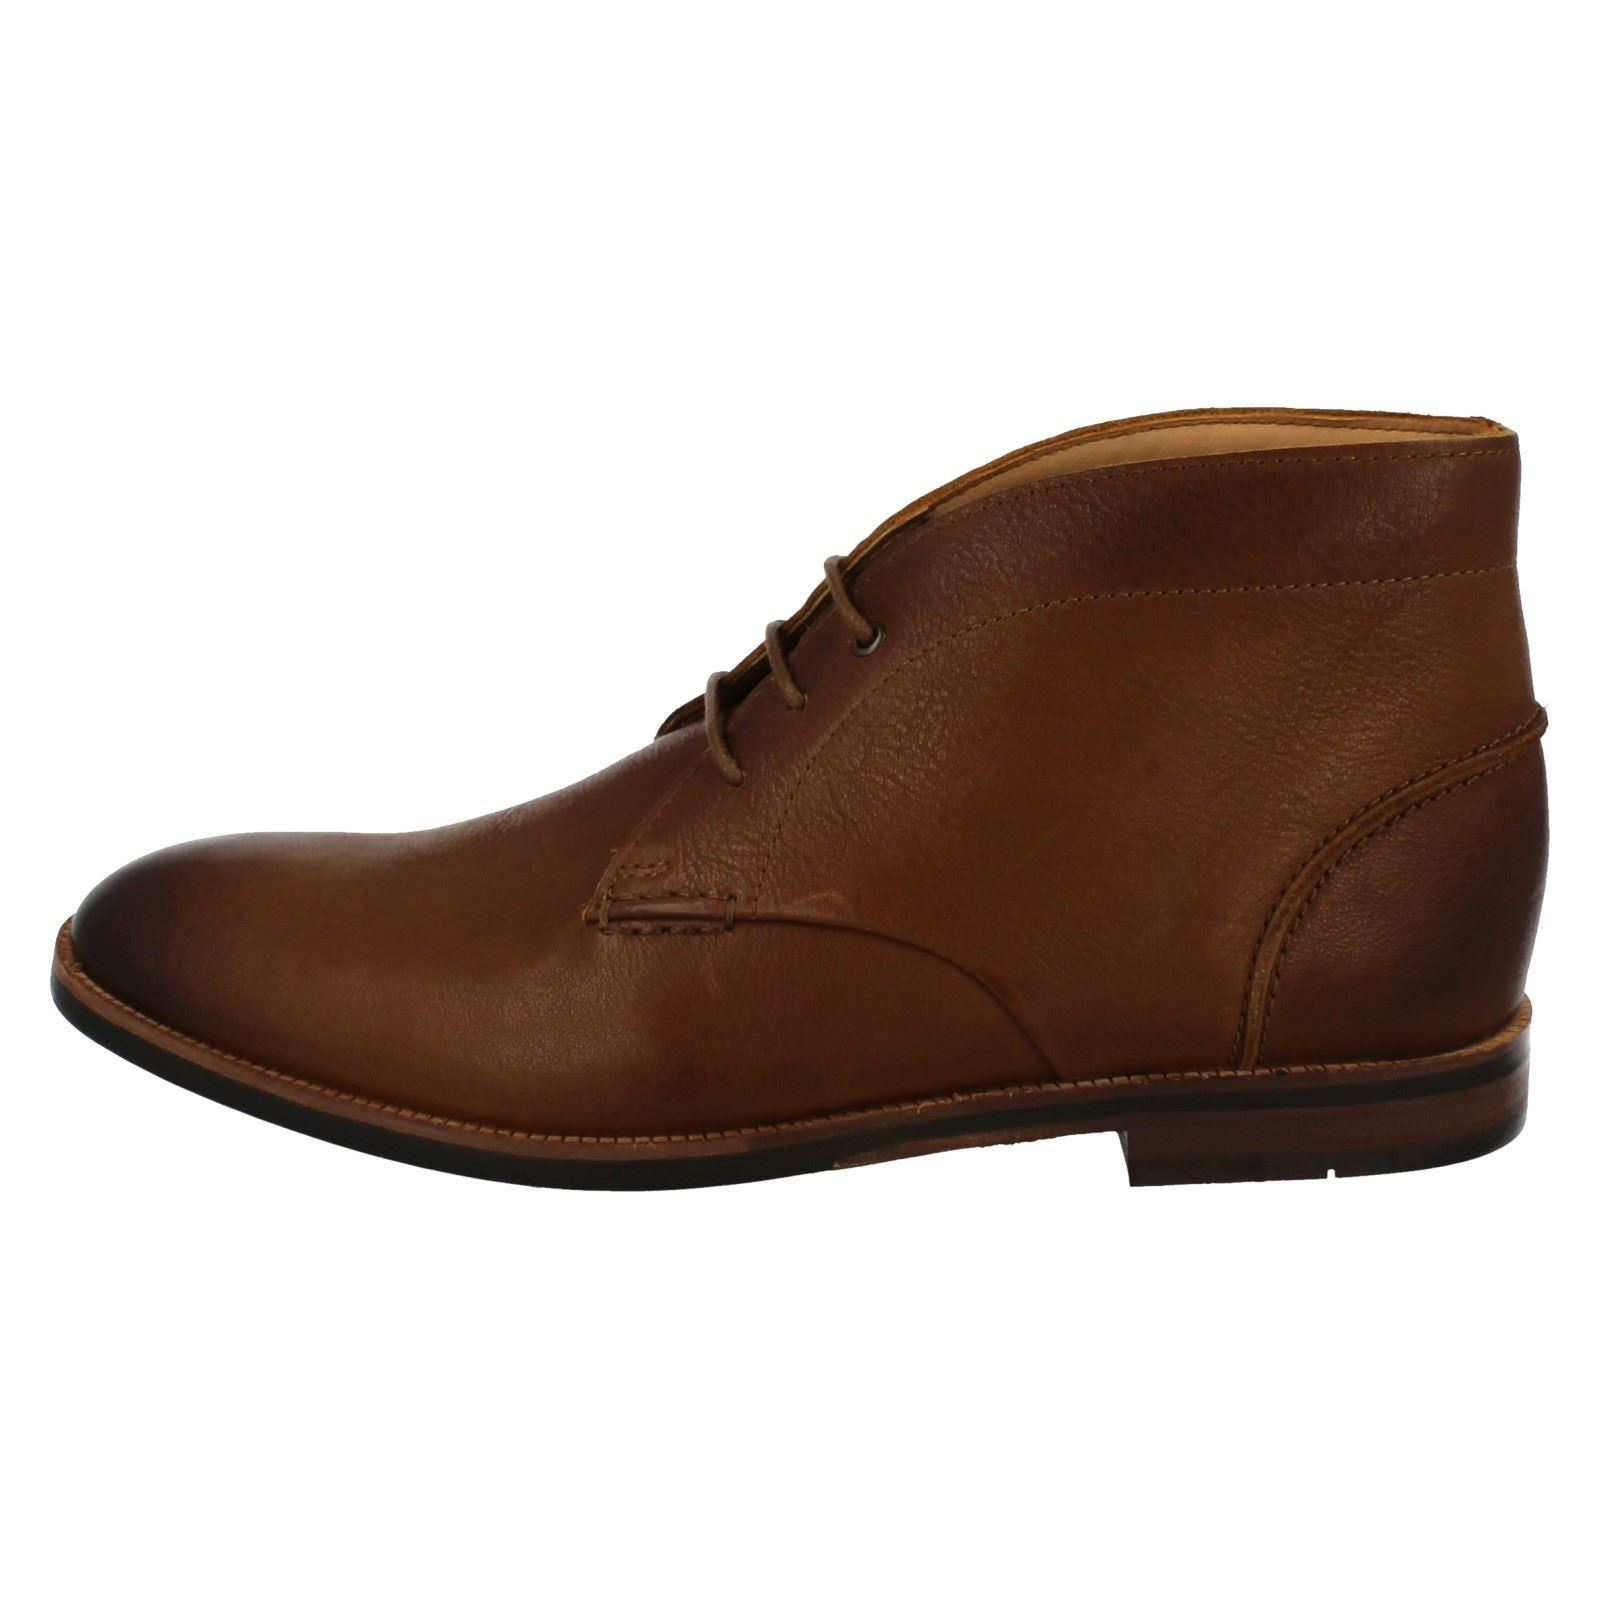 Up Uomo Clarks Smart Lace Up  Ankle Stiefel 'Broyd Mid' 8d0c46